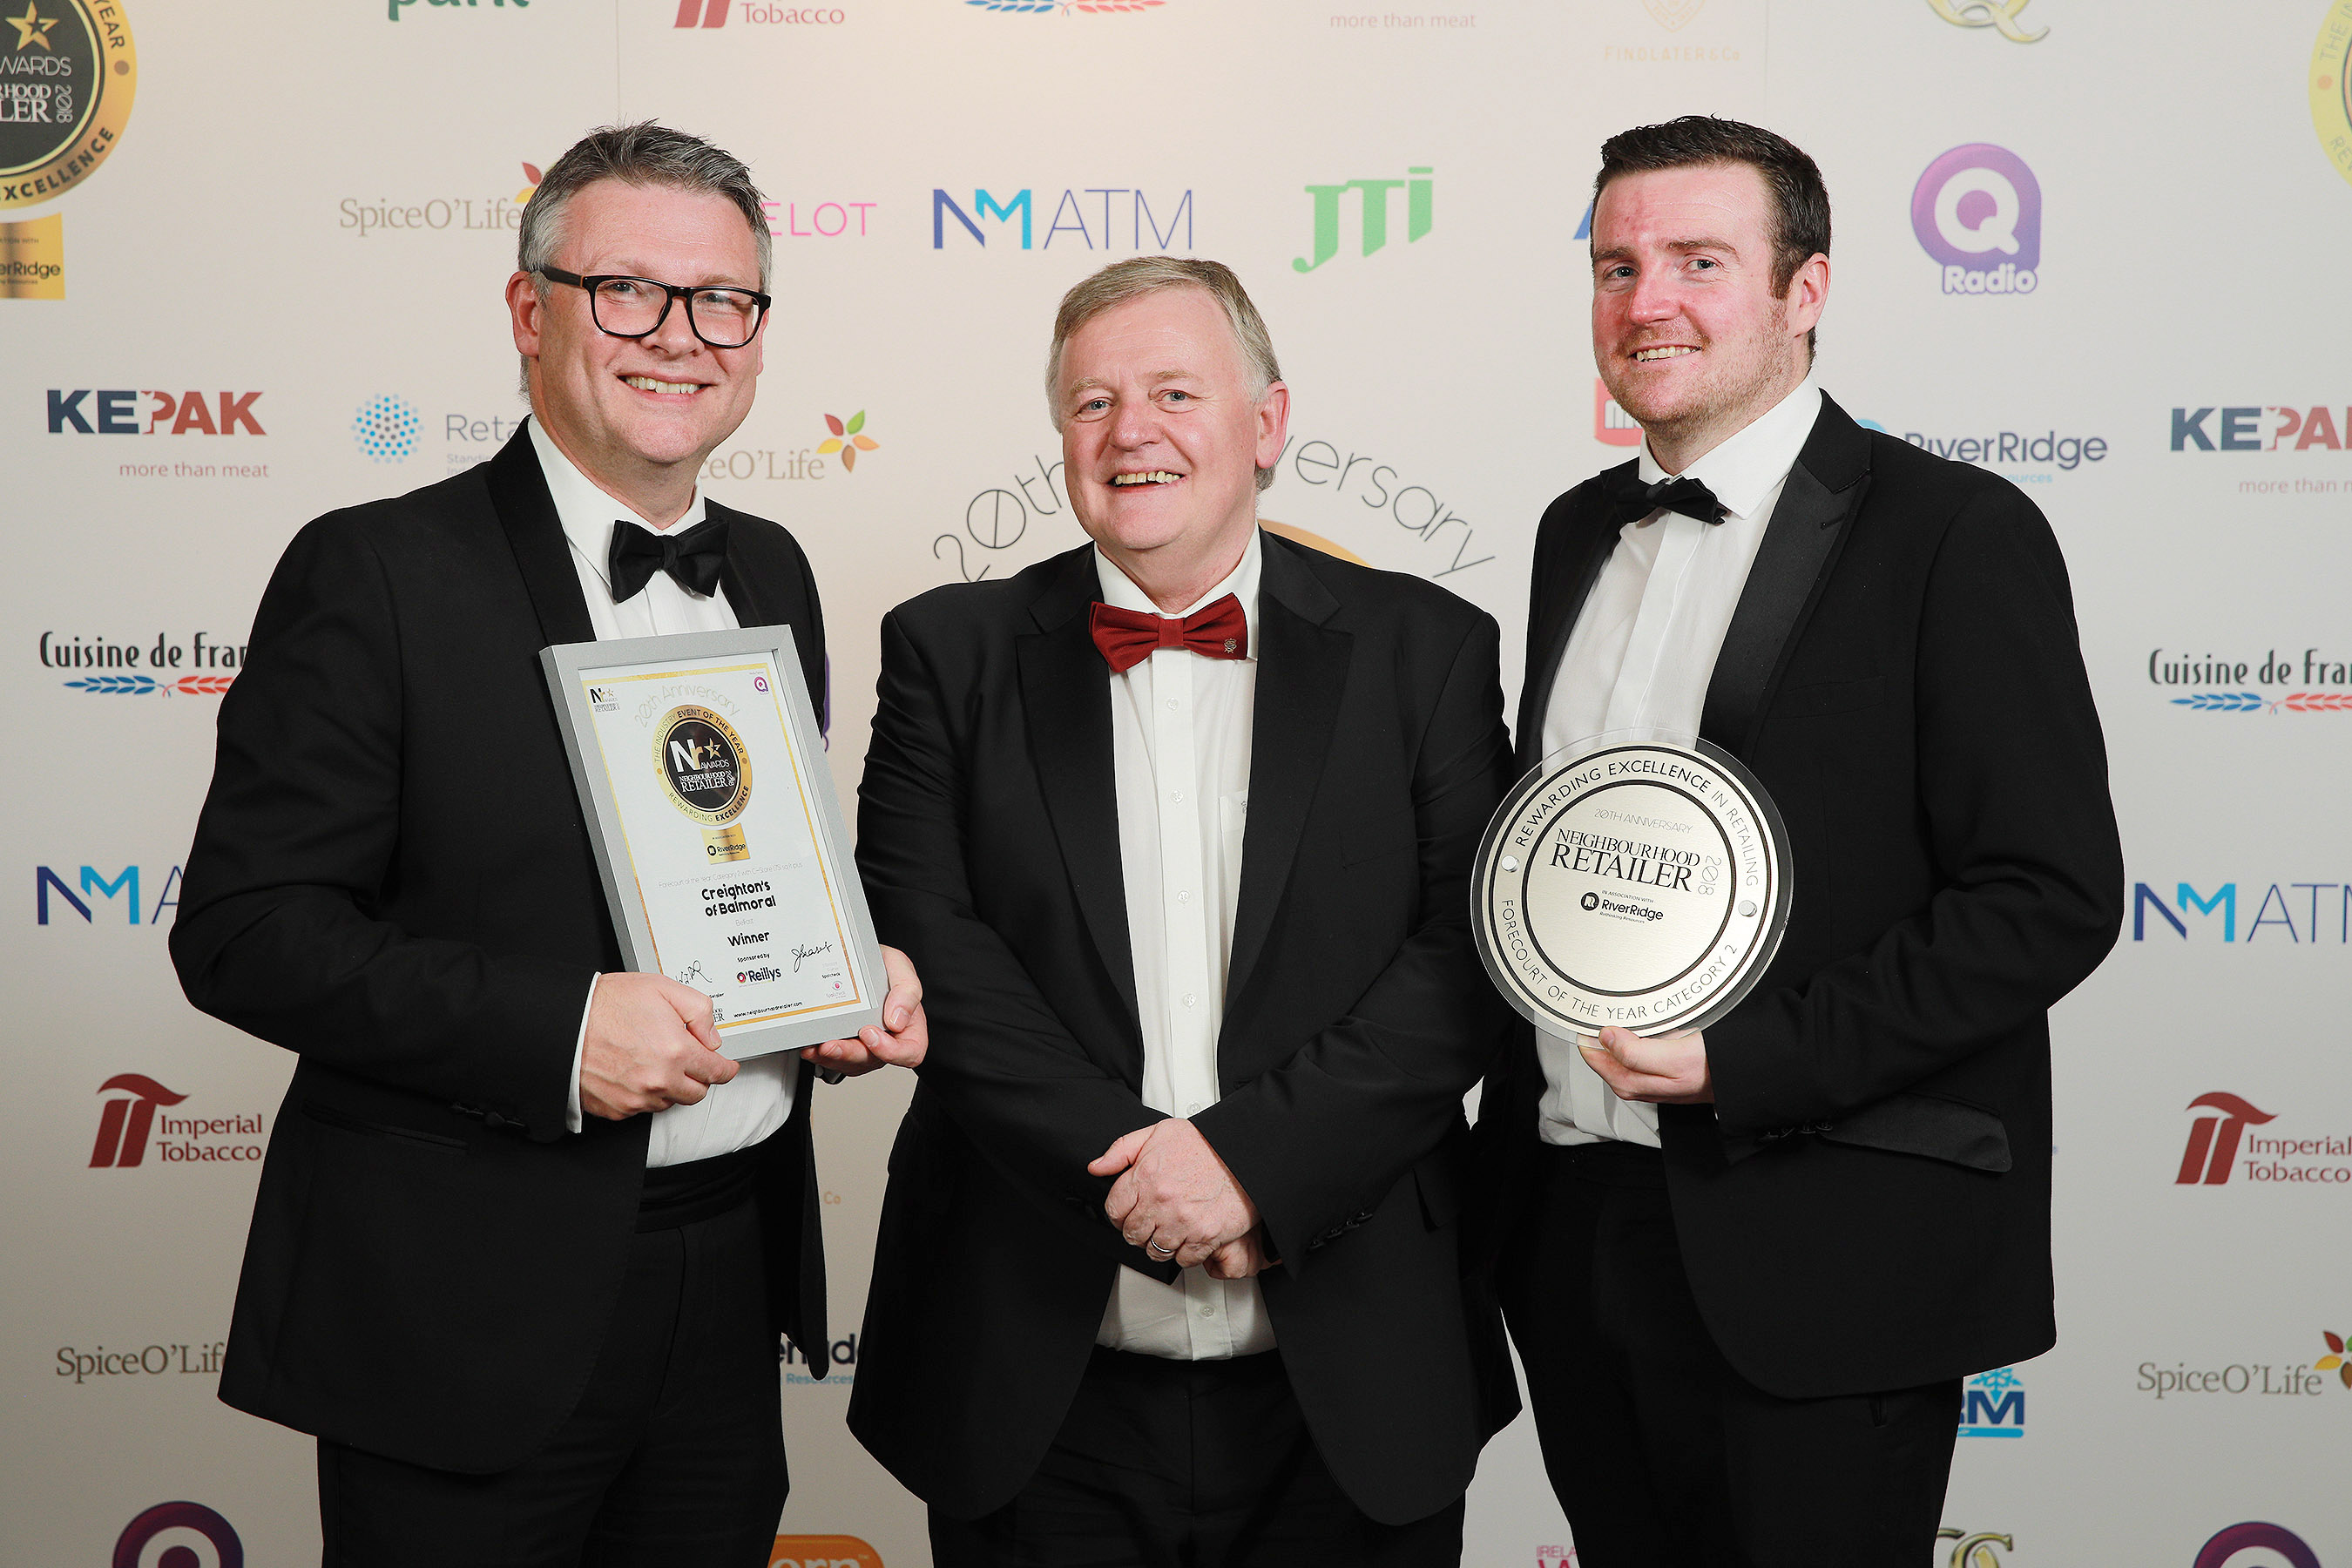 Neighbourhood Retailer Awards 2018 - Forecourt Cat 2 winner